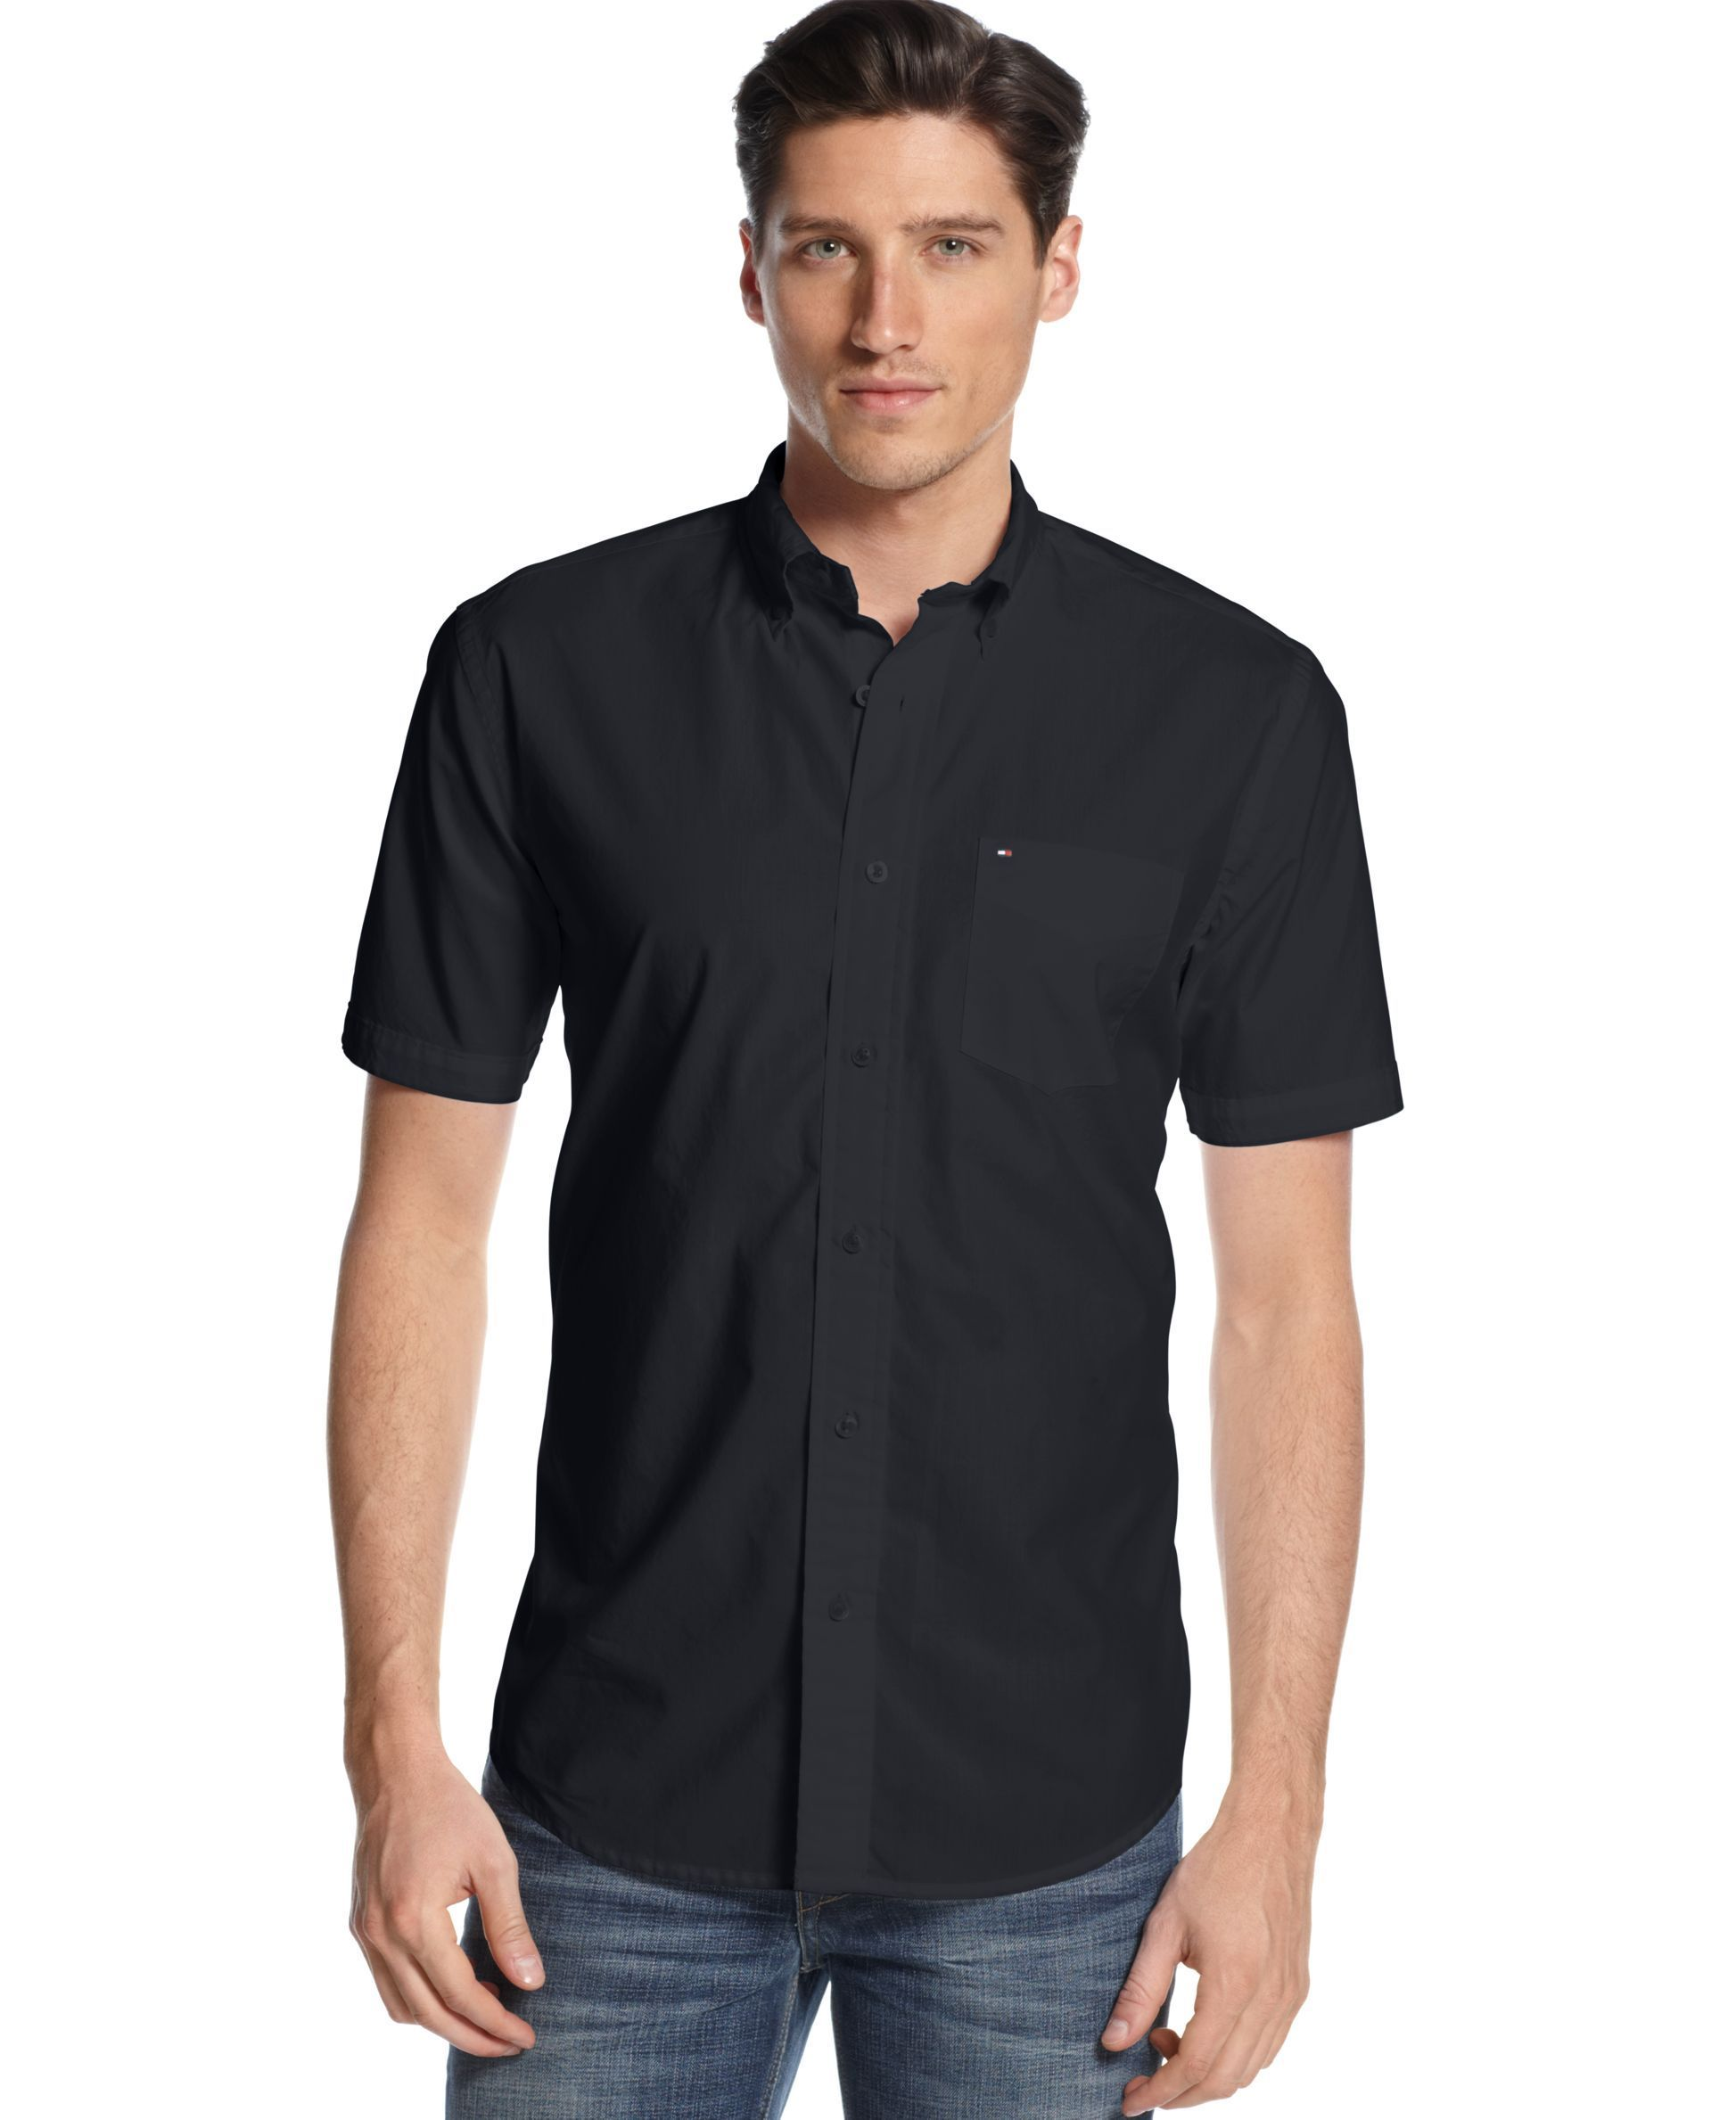 d8b796485 Tommy Hilfiger Short Sleeve Maxwell Shirt | Mens style | Tommy ...